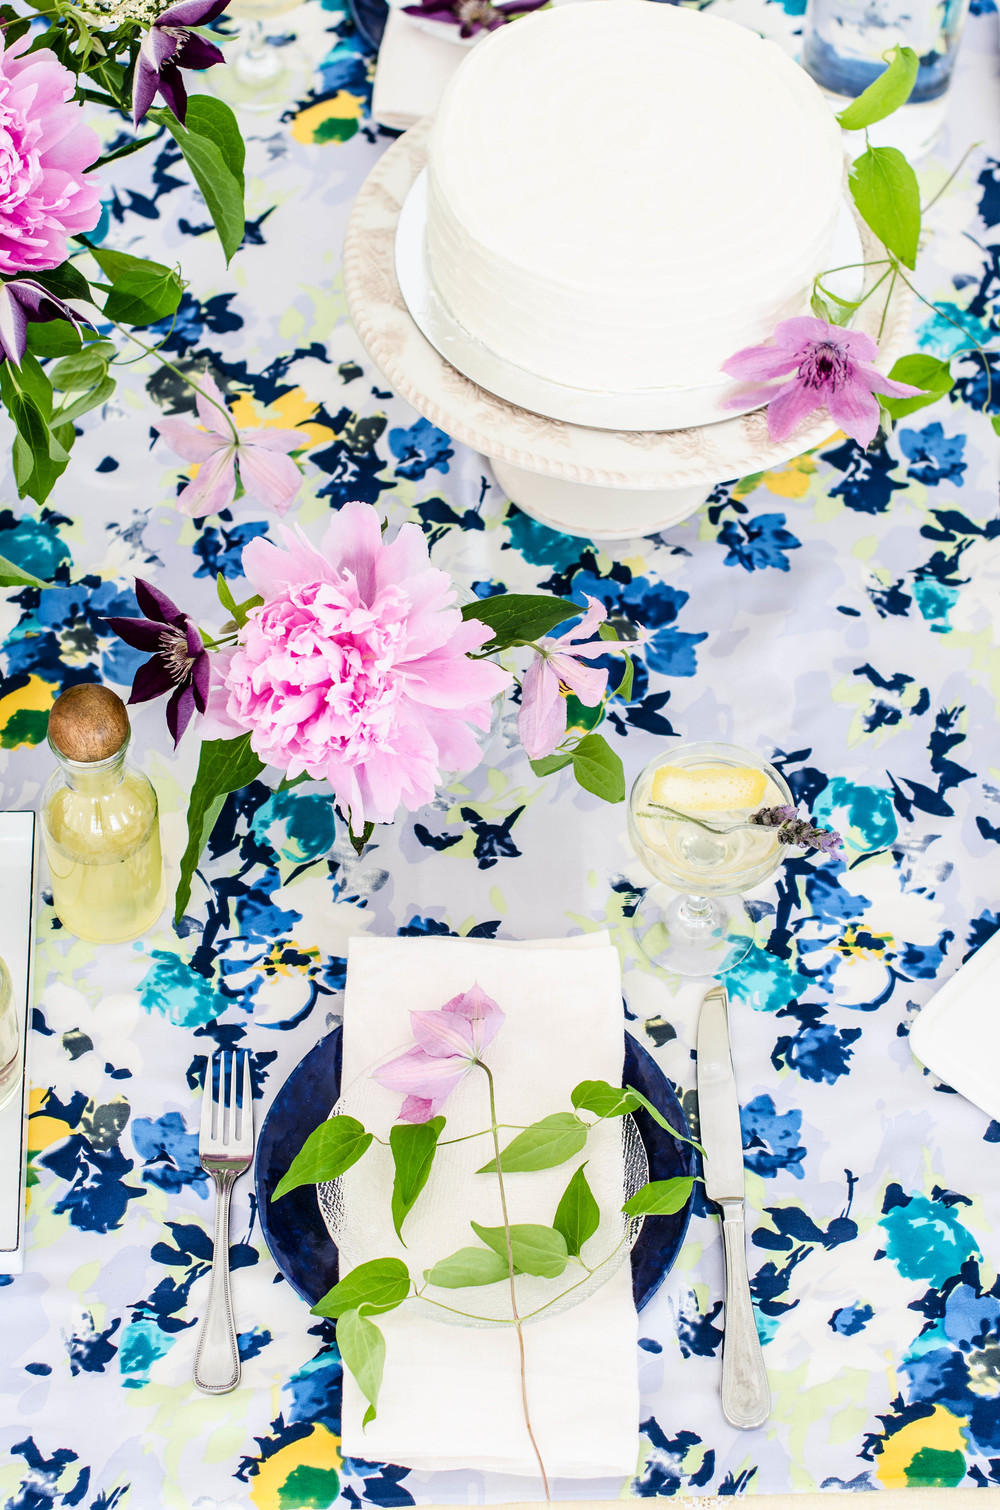 ROSE & IVY Journal A Floral Soiree